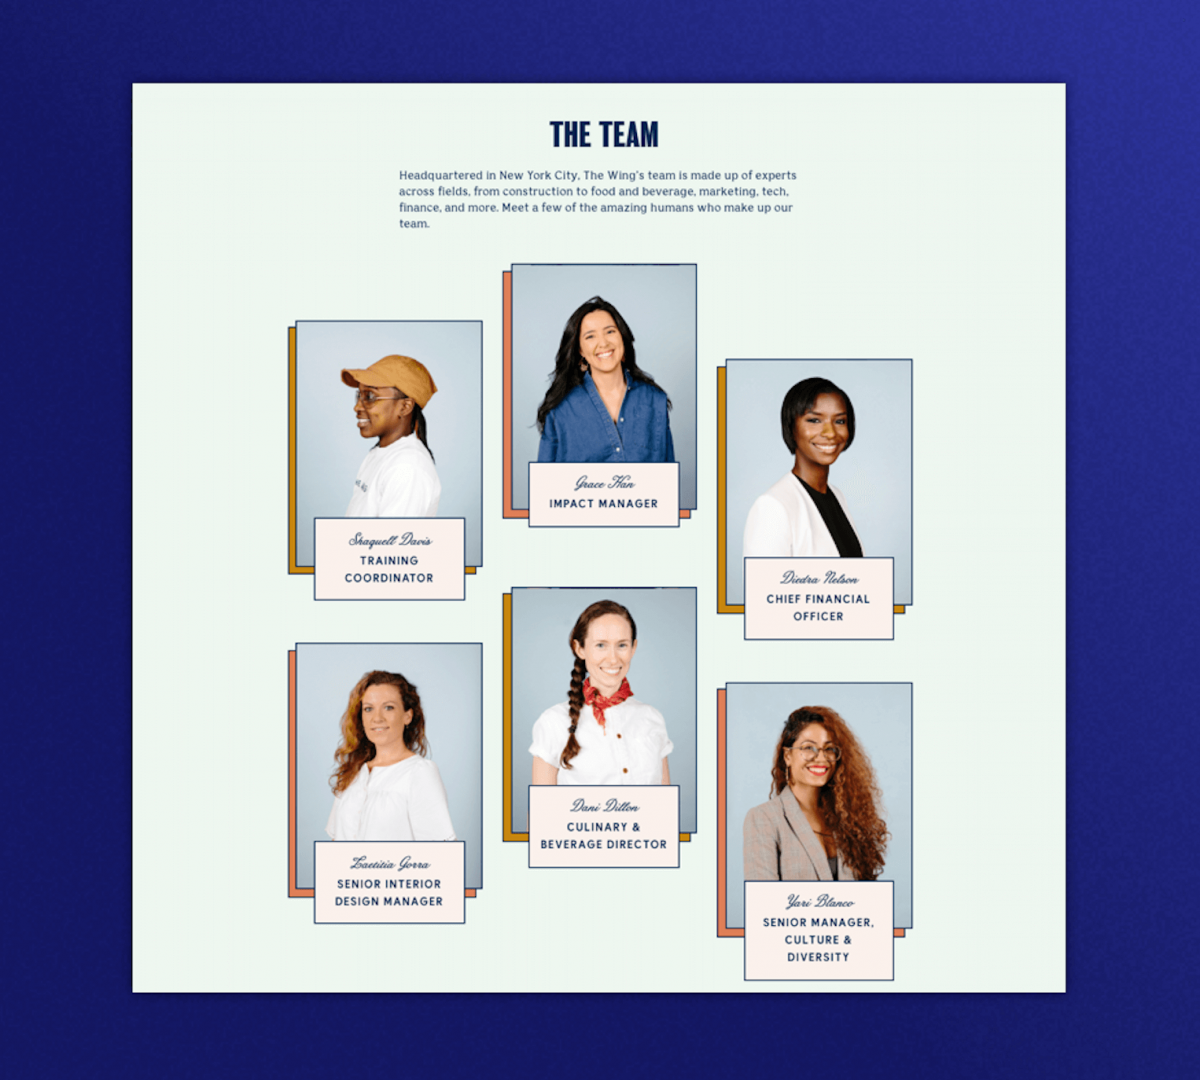 Team section for The Wing's website with images of 6 diverse women in their leadership team